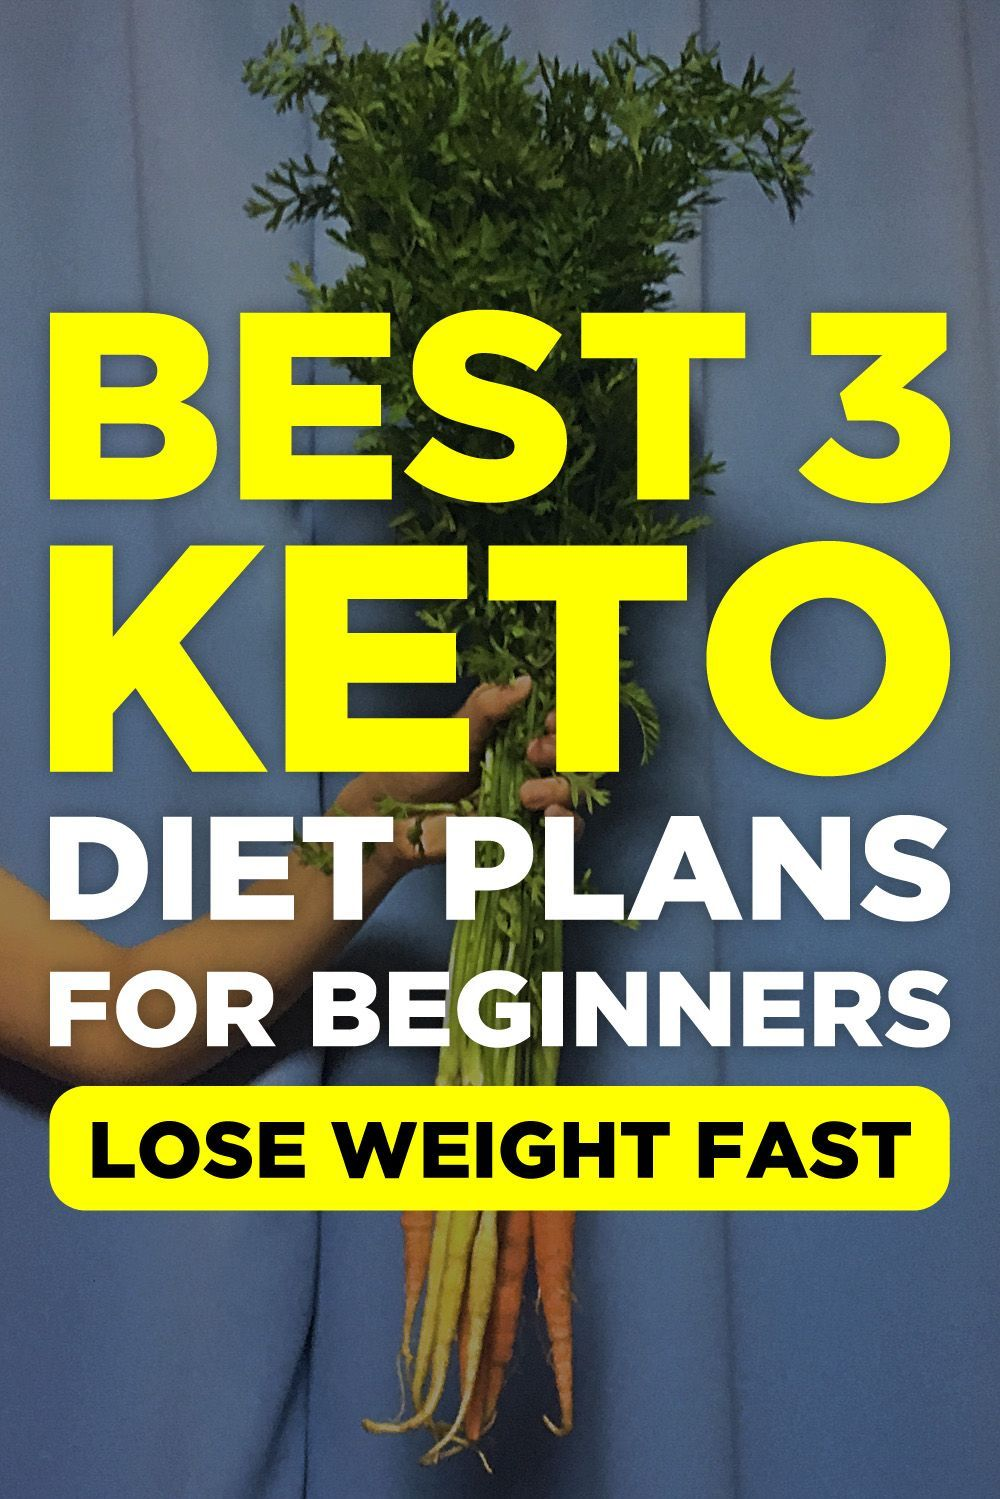 fat loss diet, best cardio for weight loss, motivate lose weight, get skinny fast, keto diet joe rogan, keto recipe chicken, fat burning meals, how to get abs, keto diet delivery, ketogenic recipes dinner keto, lose 80 pounds in 6 months, protien diet, keto diet before and after, macros diet recipes, smoothies to lose weight, tummy workout, how to loose belly fat for women, keto diet app, healthy diets to lose weight, low fat cheeses, want to lose weight, #protiendiet fat los